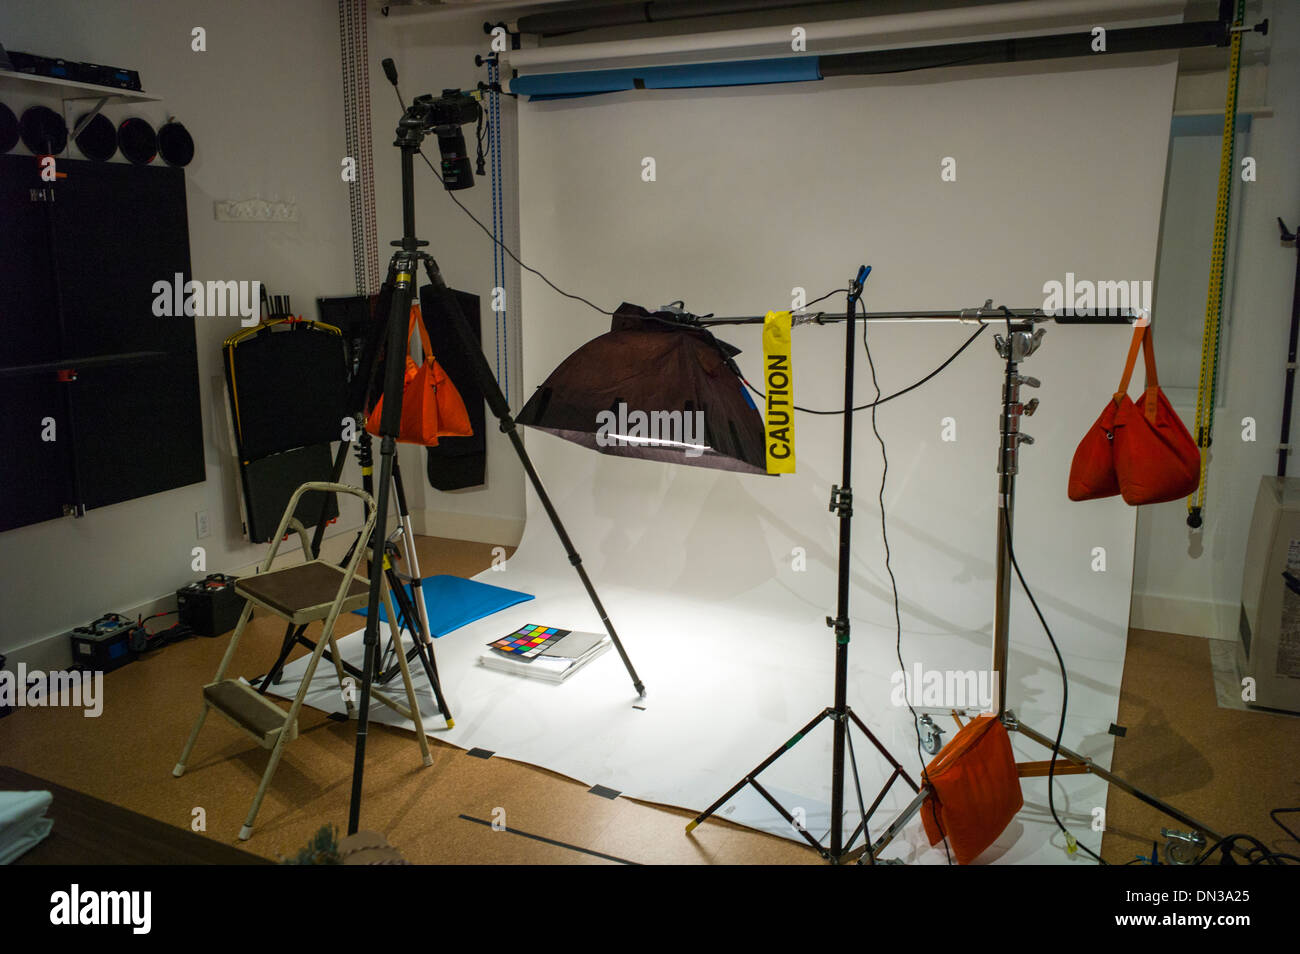 Commercial photography set including lighting stock photos commercial photography set including lighting background and grip gear stock image aloadofball Images